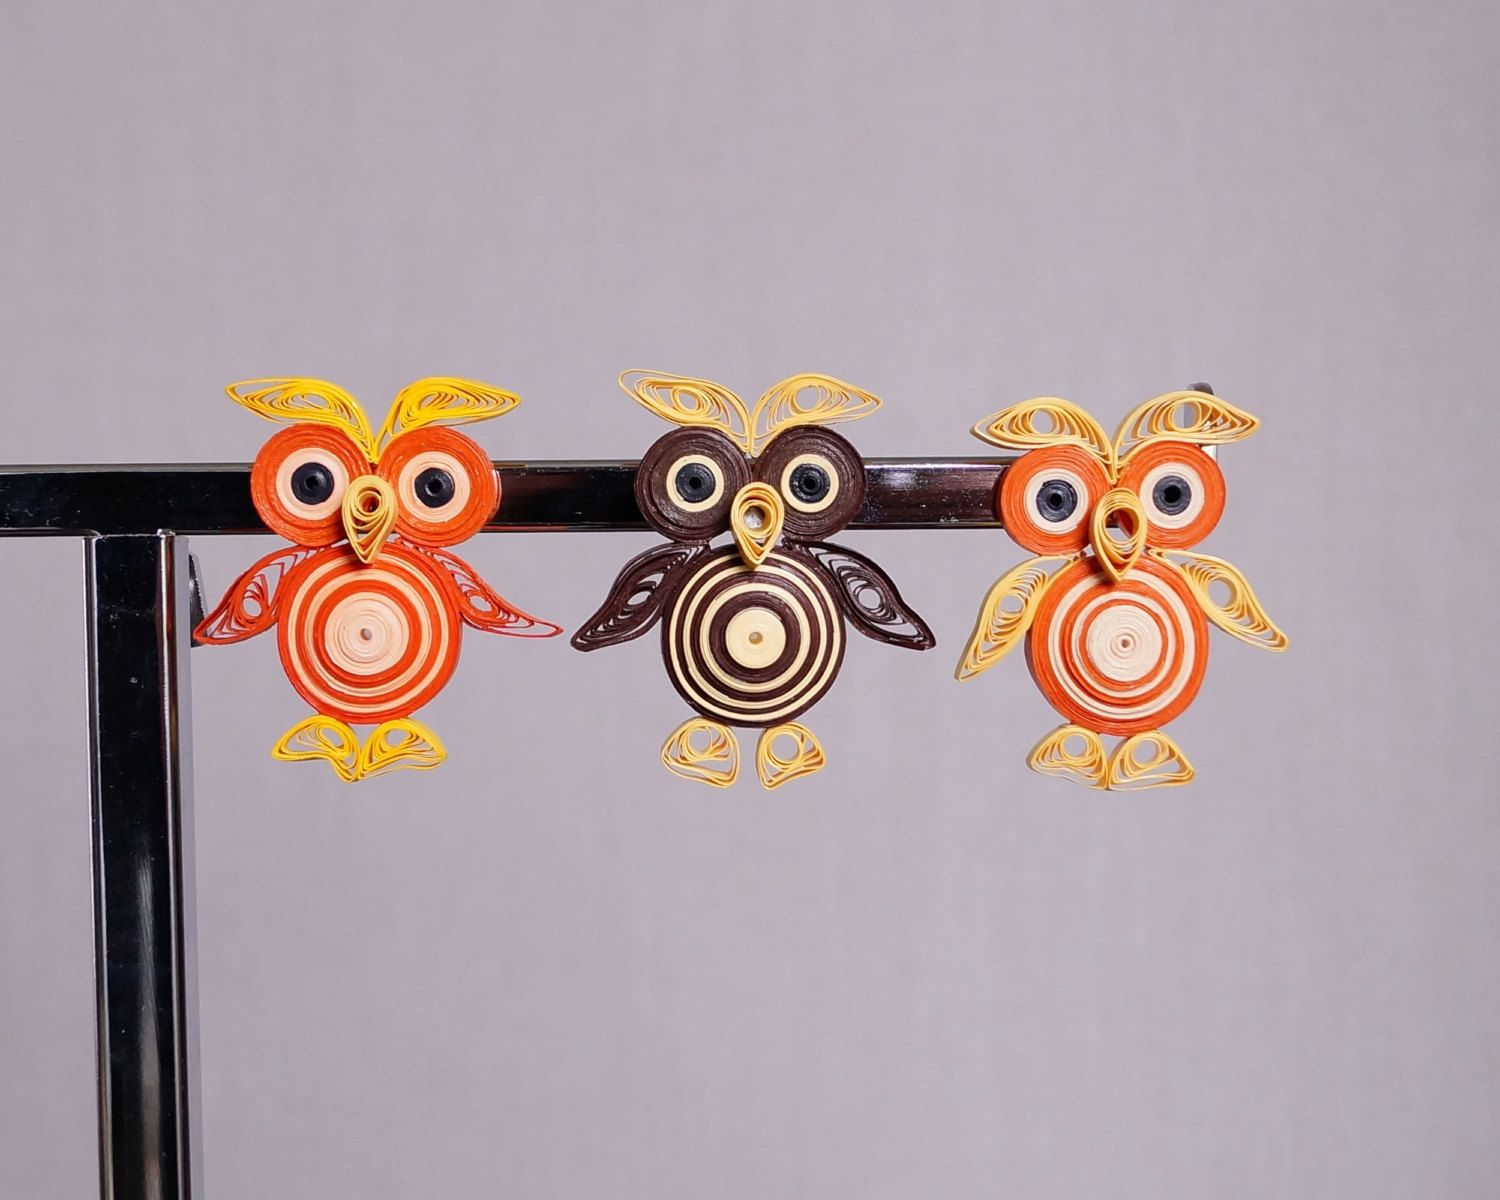 Quilling Home Decor Magnet Owl Magnet Kitchen Decor Home Decor Gift Kitchen Magnet